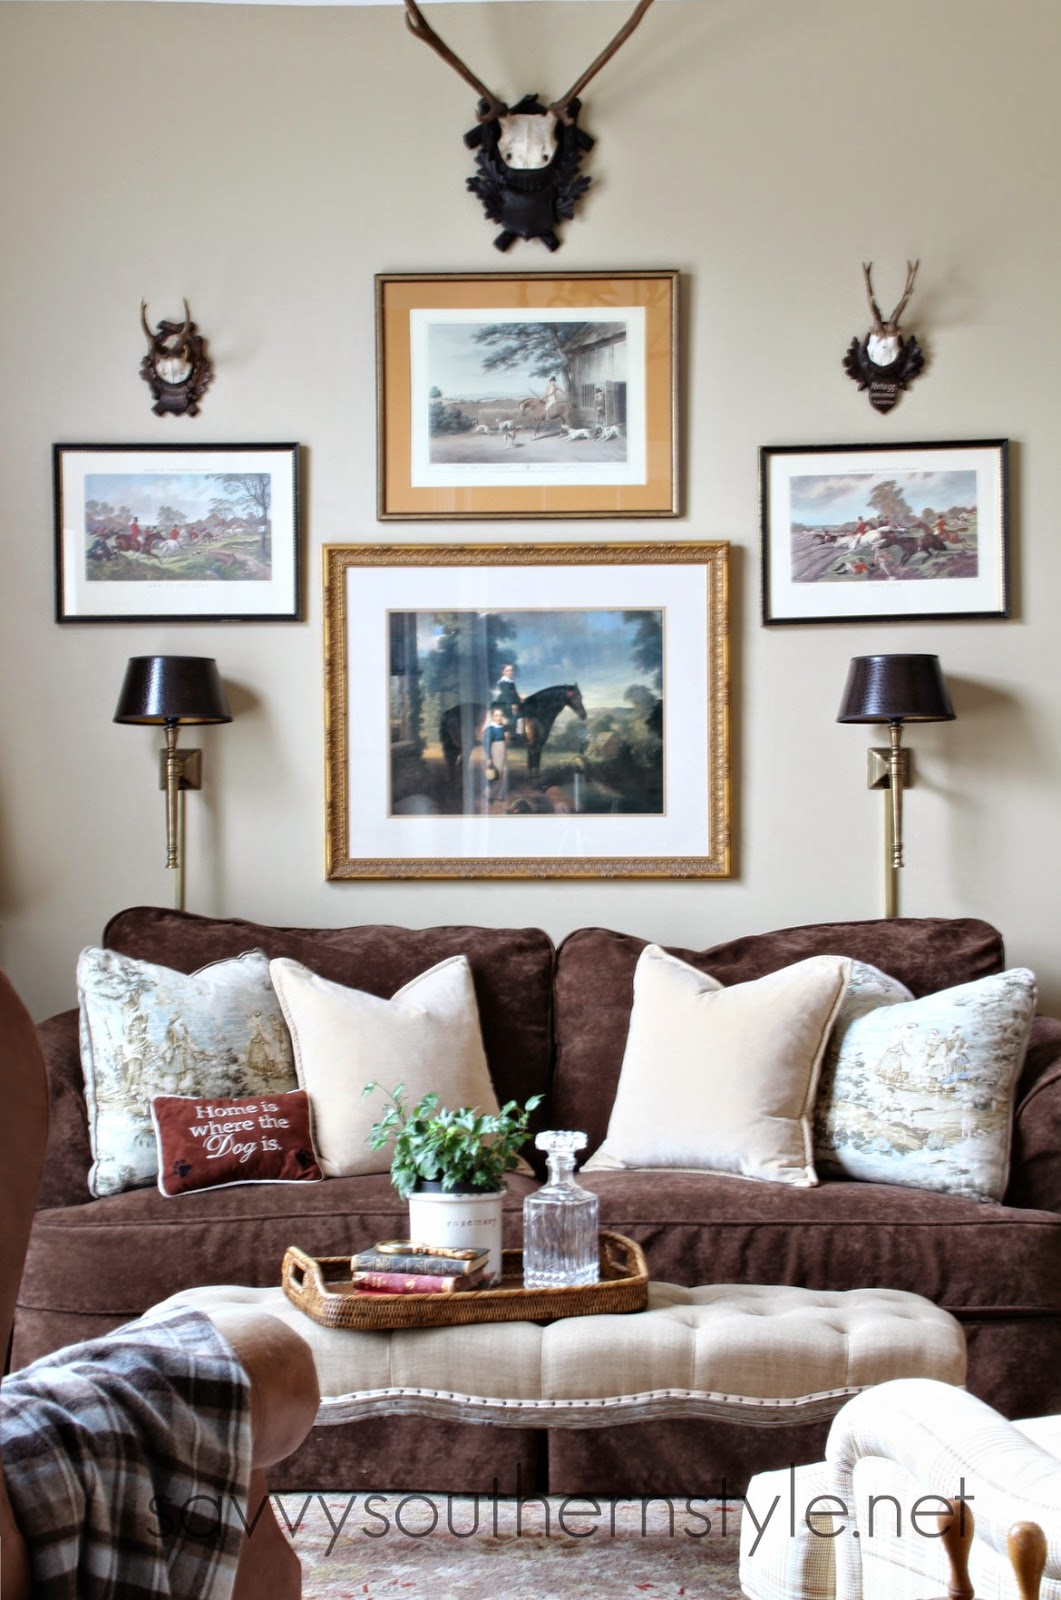 Ideal I love the gallery wall I created a few years ago but I have always wanted to add two sconces over the sofa to add more of a library feel